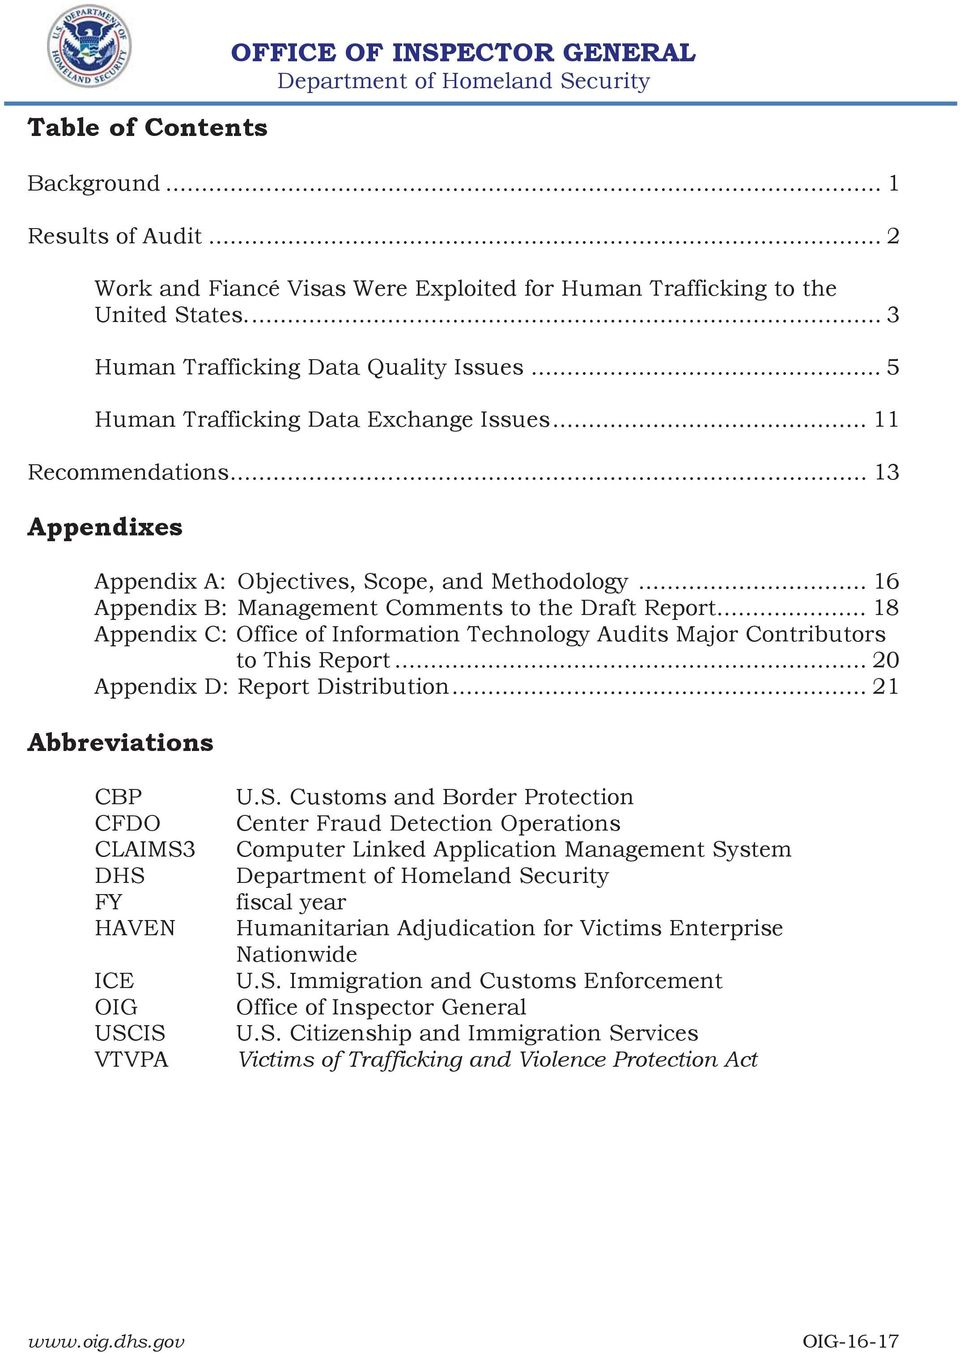 .. 18 Appendix C: Office of Information Technology Audits Major Contributors to This Report... 20 Appendix D: Report Distribution... 21 Abbreviations CBP CFDO CLAIMS3 DHS FY HAVEN ICE OIG USCIS VTVPA U.